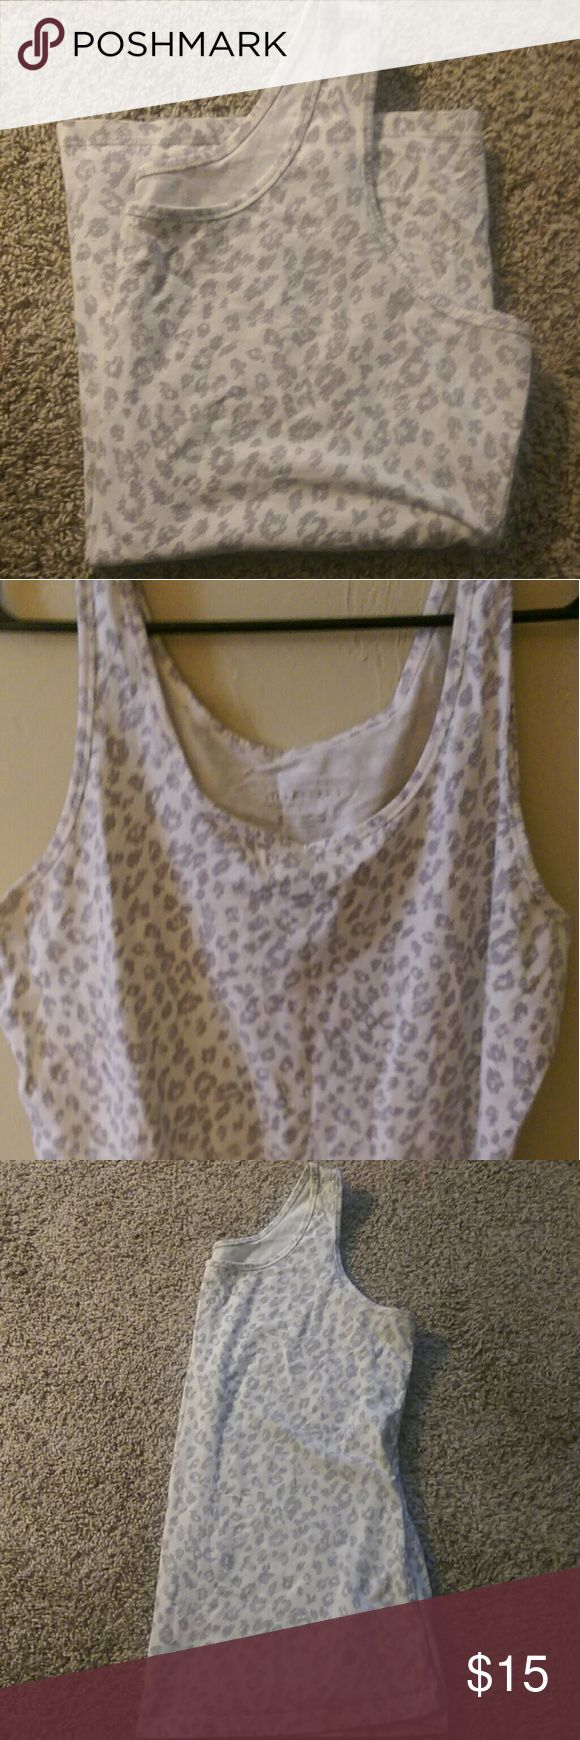 Plus Size 20-22 Animal Print Cami Great condition, plus size camisole. Maurices size 2 (20-22). Creamy white color with grey cheetah animal print. No trips, stains, tears. Still can tell its been worn a few times because of texture. Smoke free Maurices Tops Camisoles